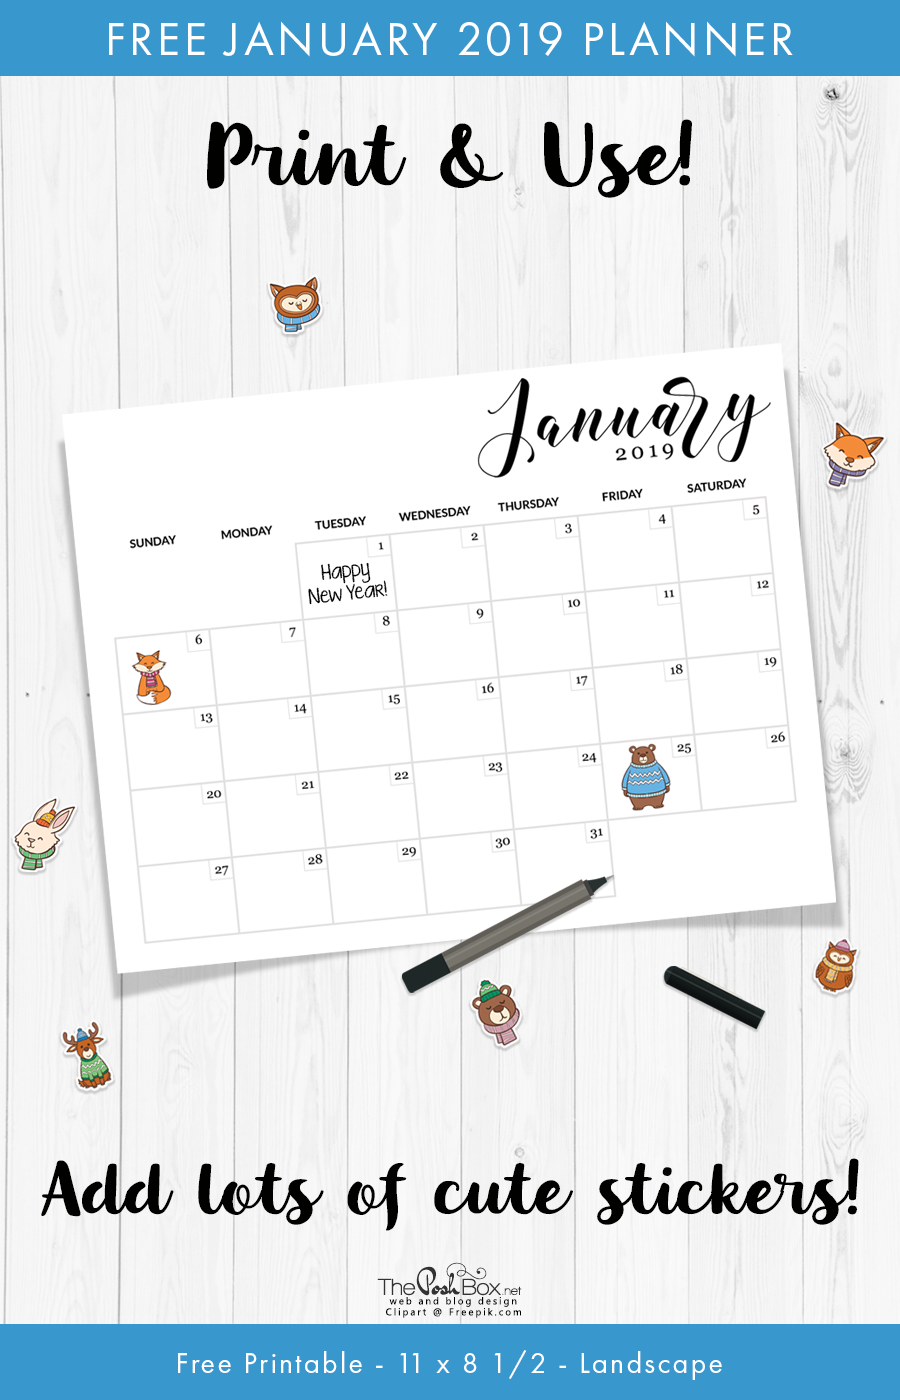 Free Printable January Calendar & Planner | The Posh Box Calendar 2019 Officemax